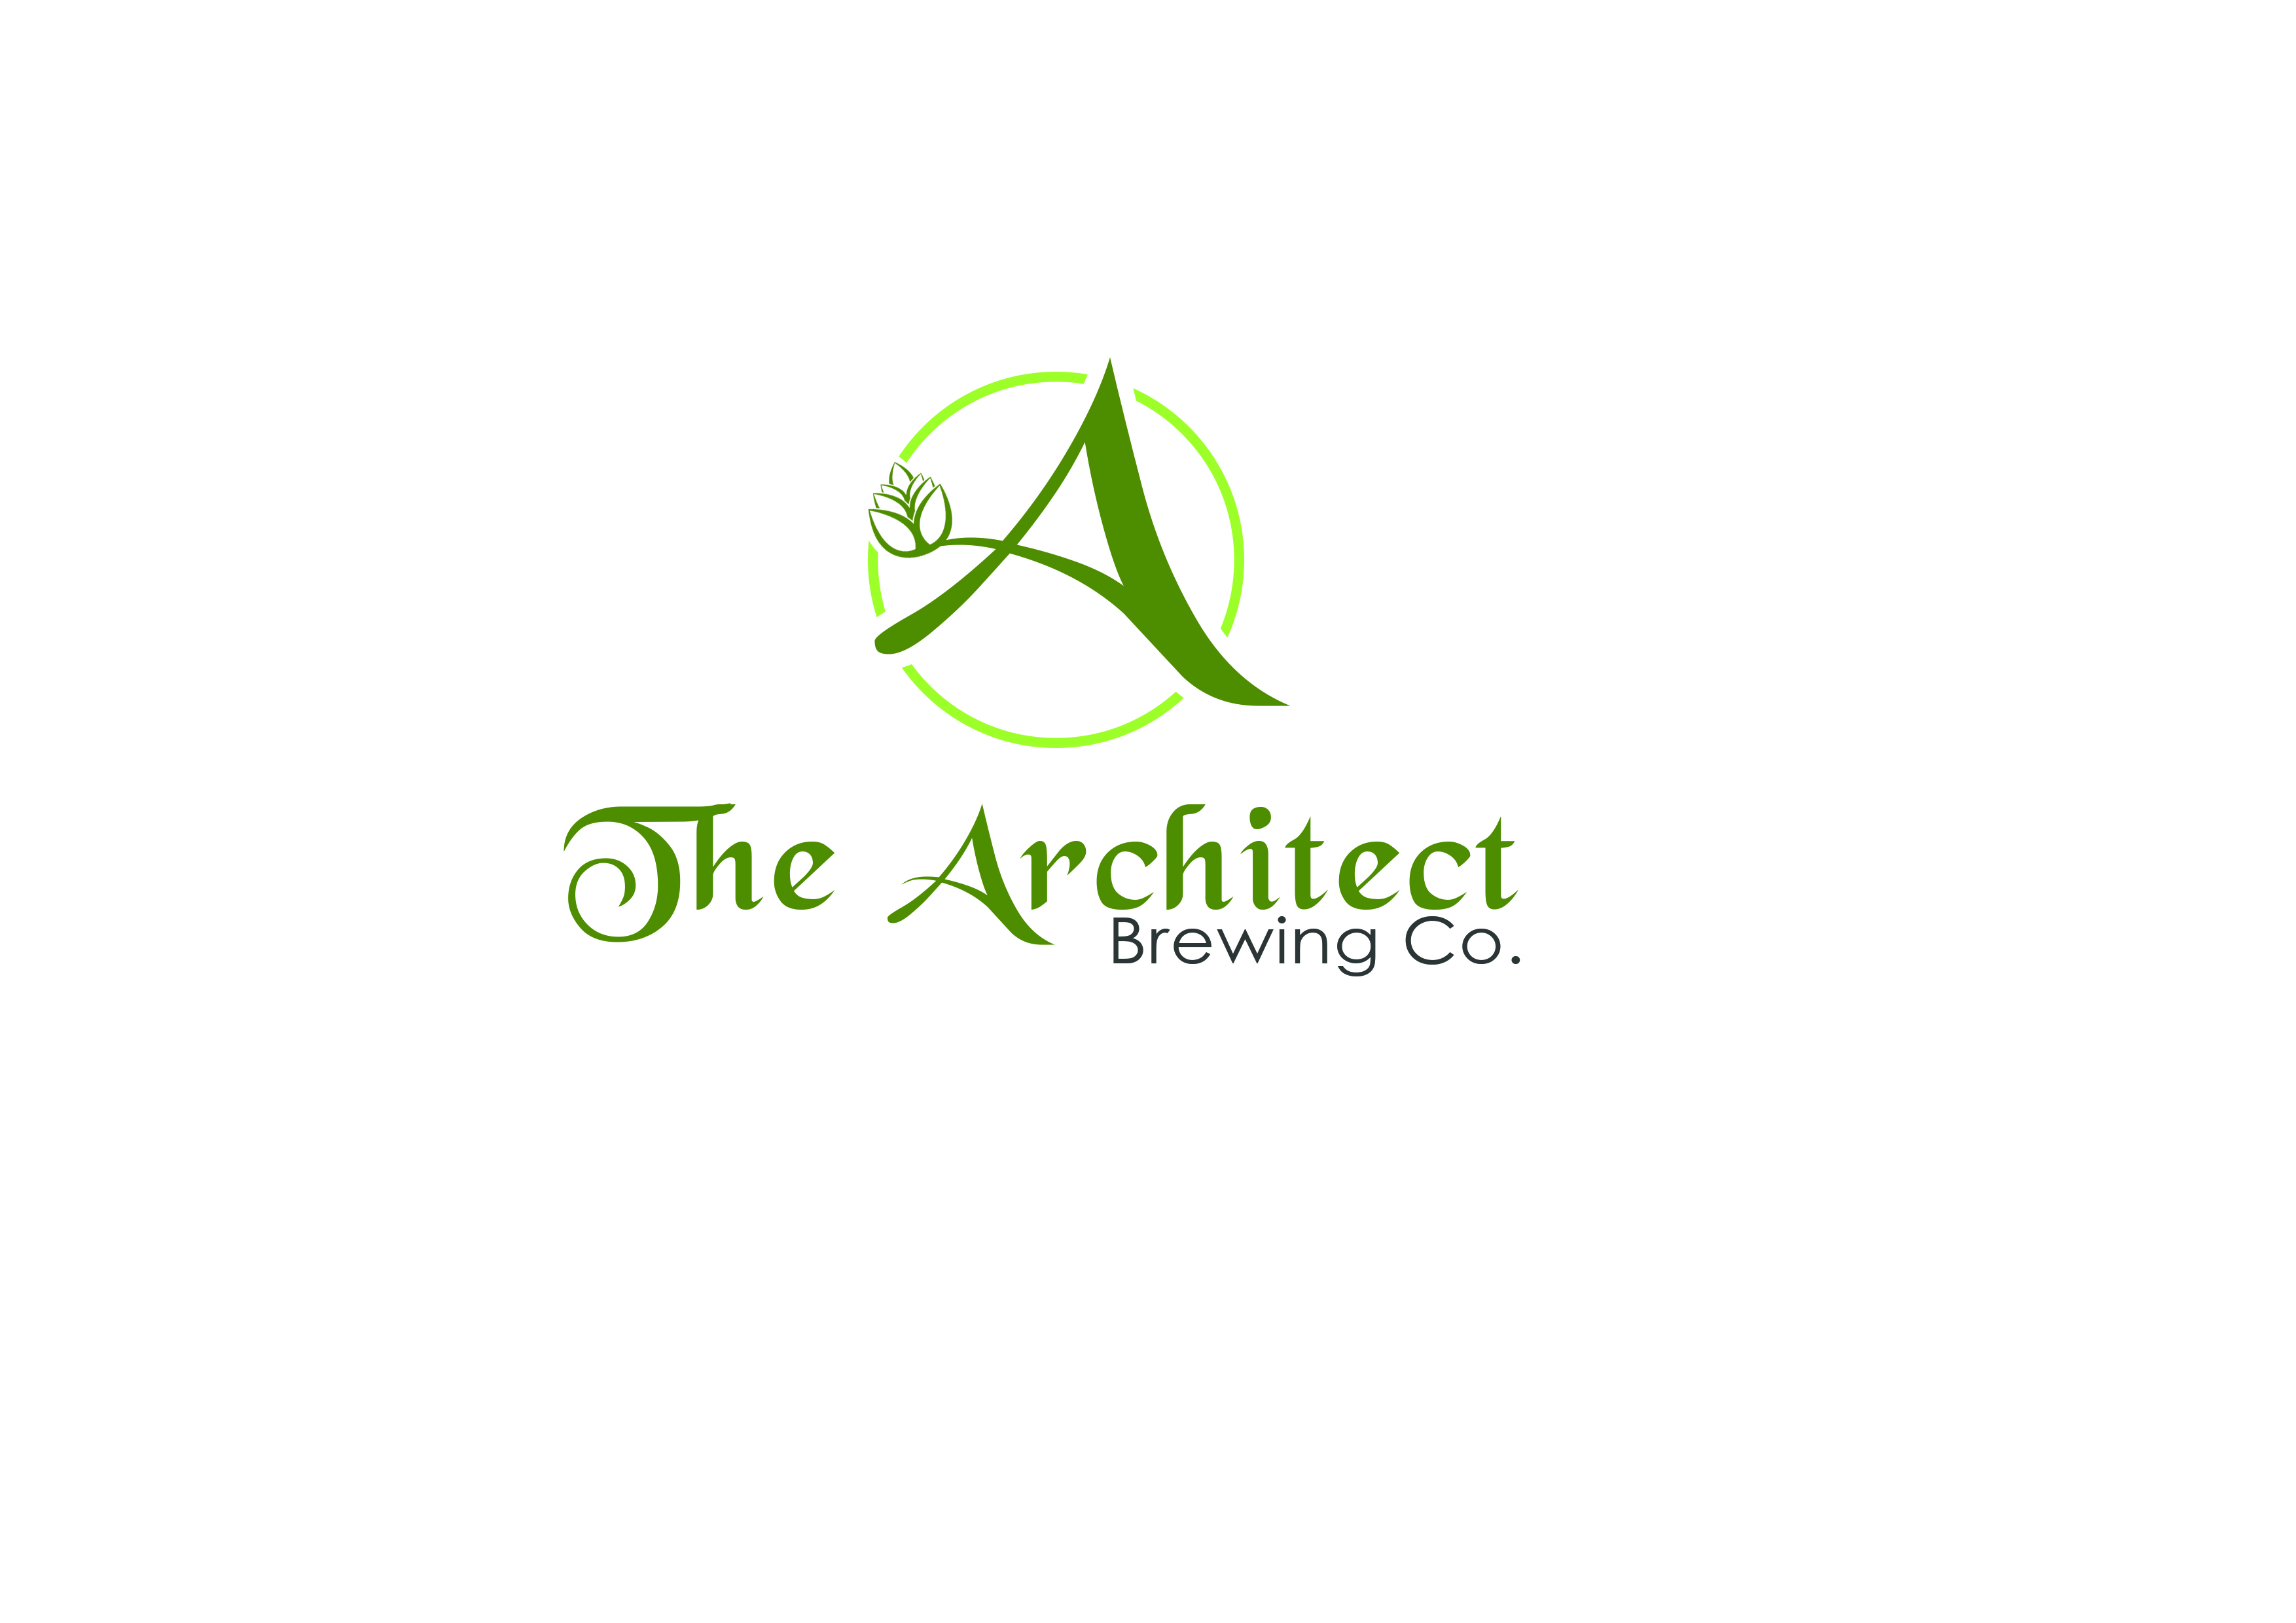 Logo Design by Jesther Jordan Minor - Entry No. 63 in the Logo Design Contest Captivating Logo Design for The Architect Brewing Co..